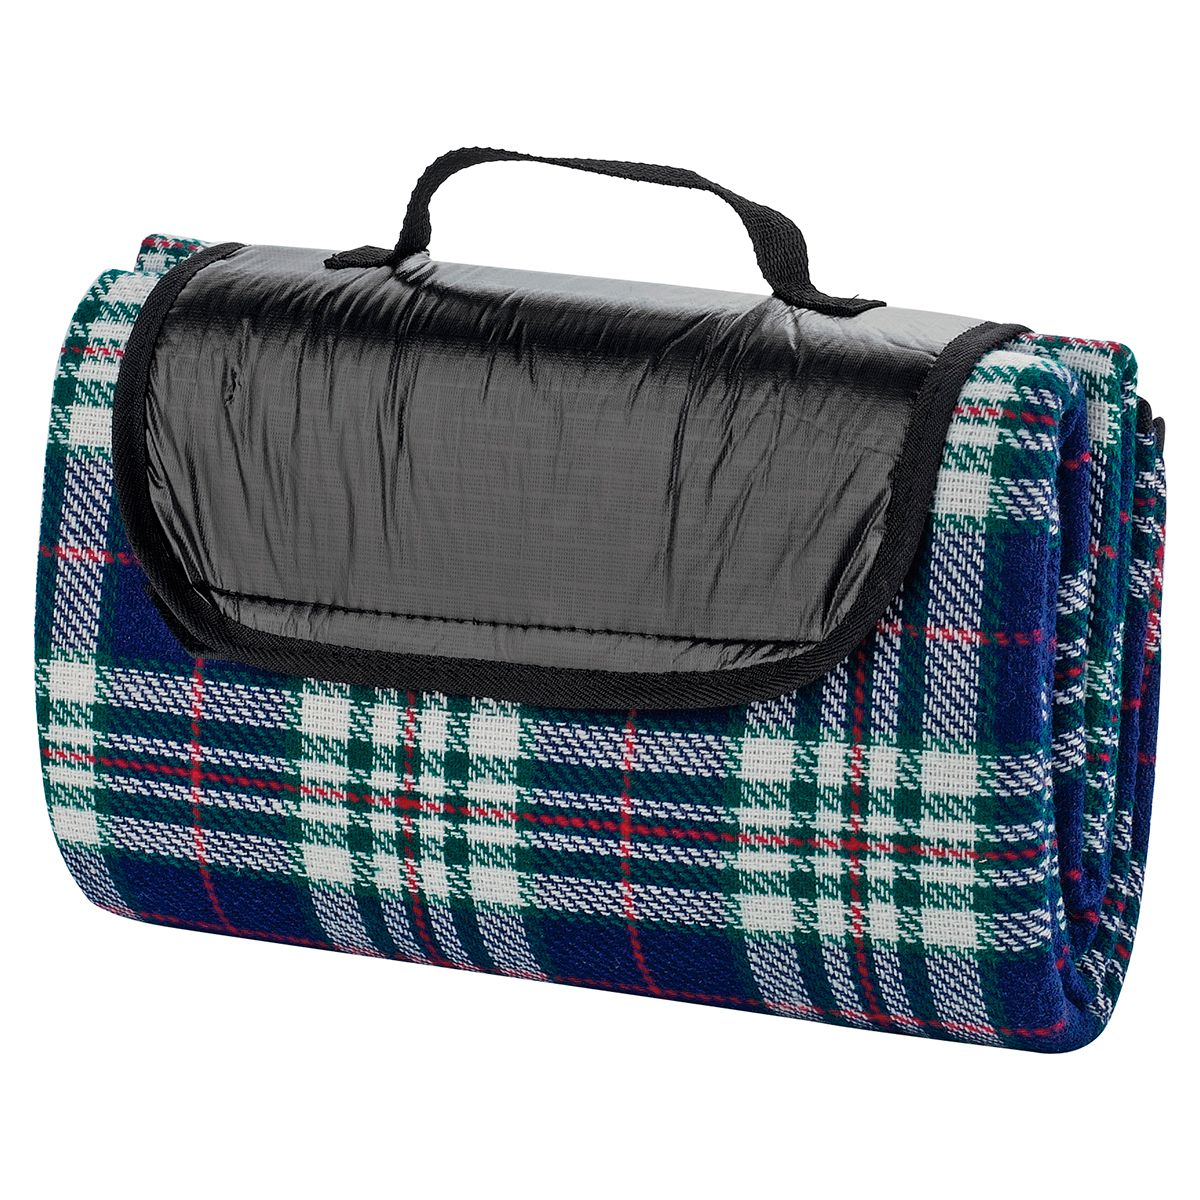 Argos Chequered Camping Picnic Blanket review 7c30bc90e5